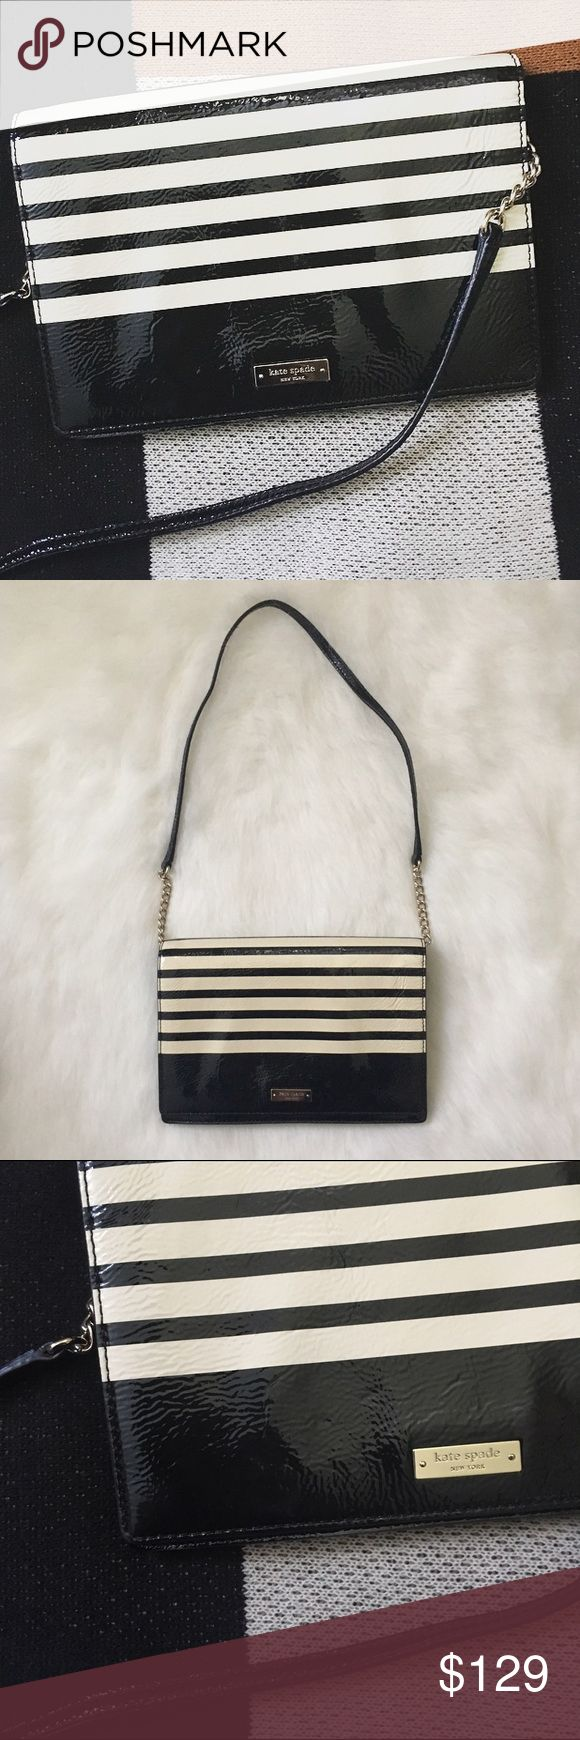 Kate Spade Patent Striped Shoulder Bag Authentic. Great preowned condition. Patent bag does show signs of wear, as all patent bags do. Black with very light cream/off white stripes. Please note that this is shoulder bag and cannot be worn as a crossbody bag. kate spade Bags Shoulder Bags